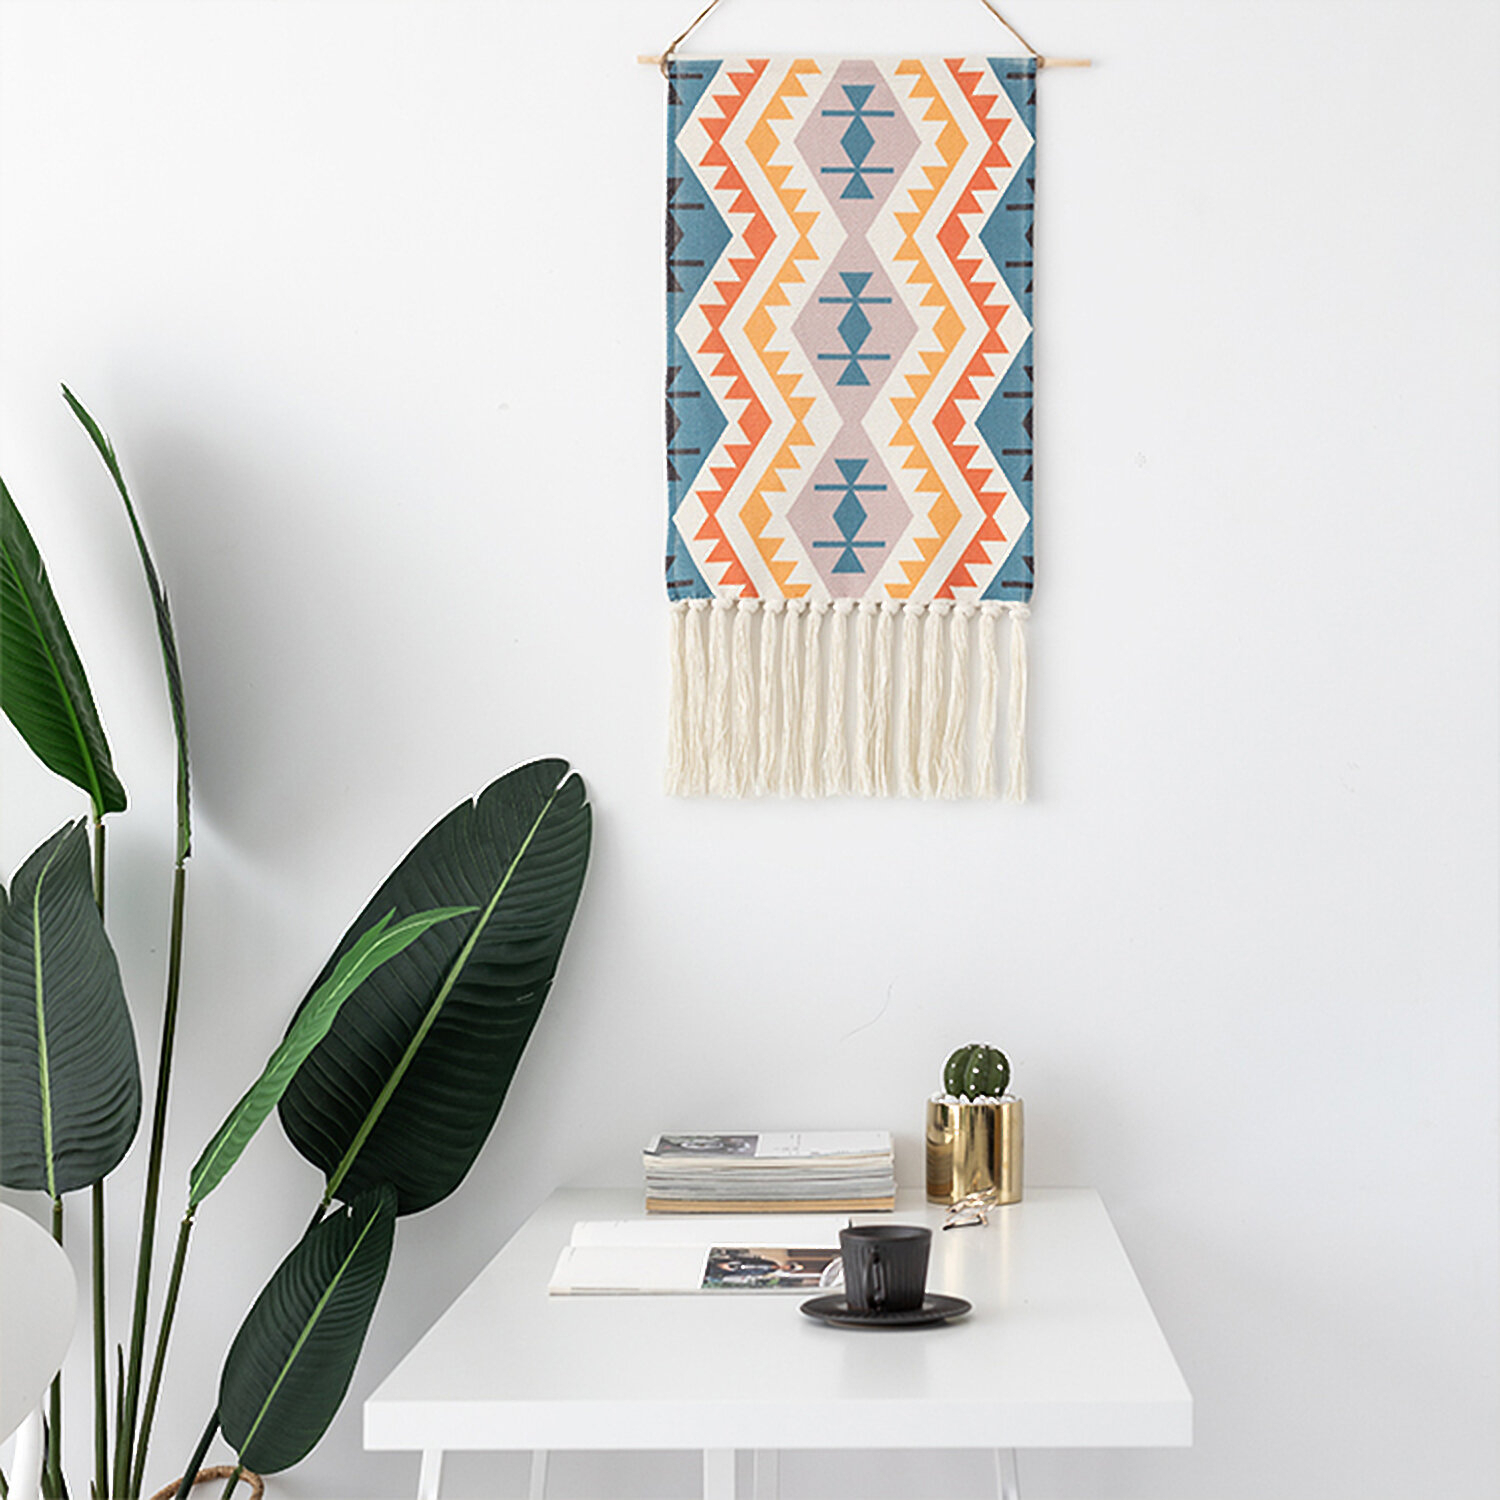 Traditional Boho Woven Tapestry Wall Hanging Within Current Blended Fabric Southwestern Bohemian Wall Hangings (View 8 of 20)